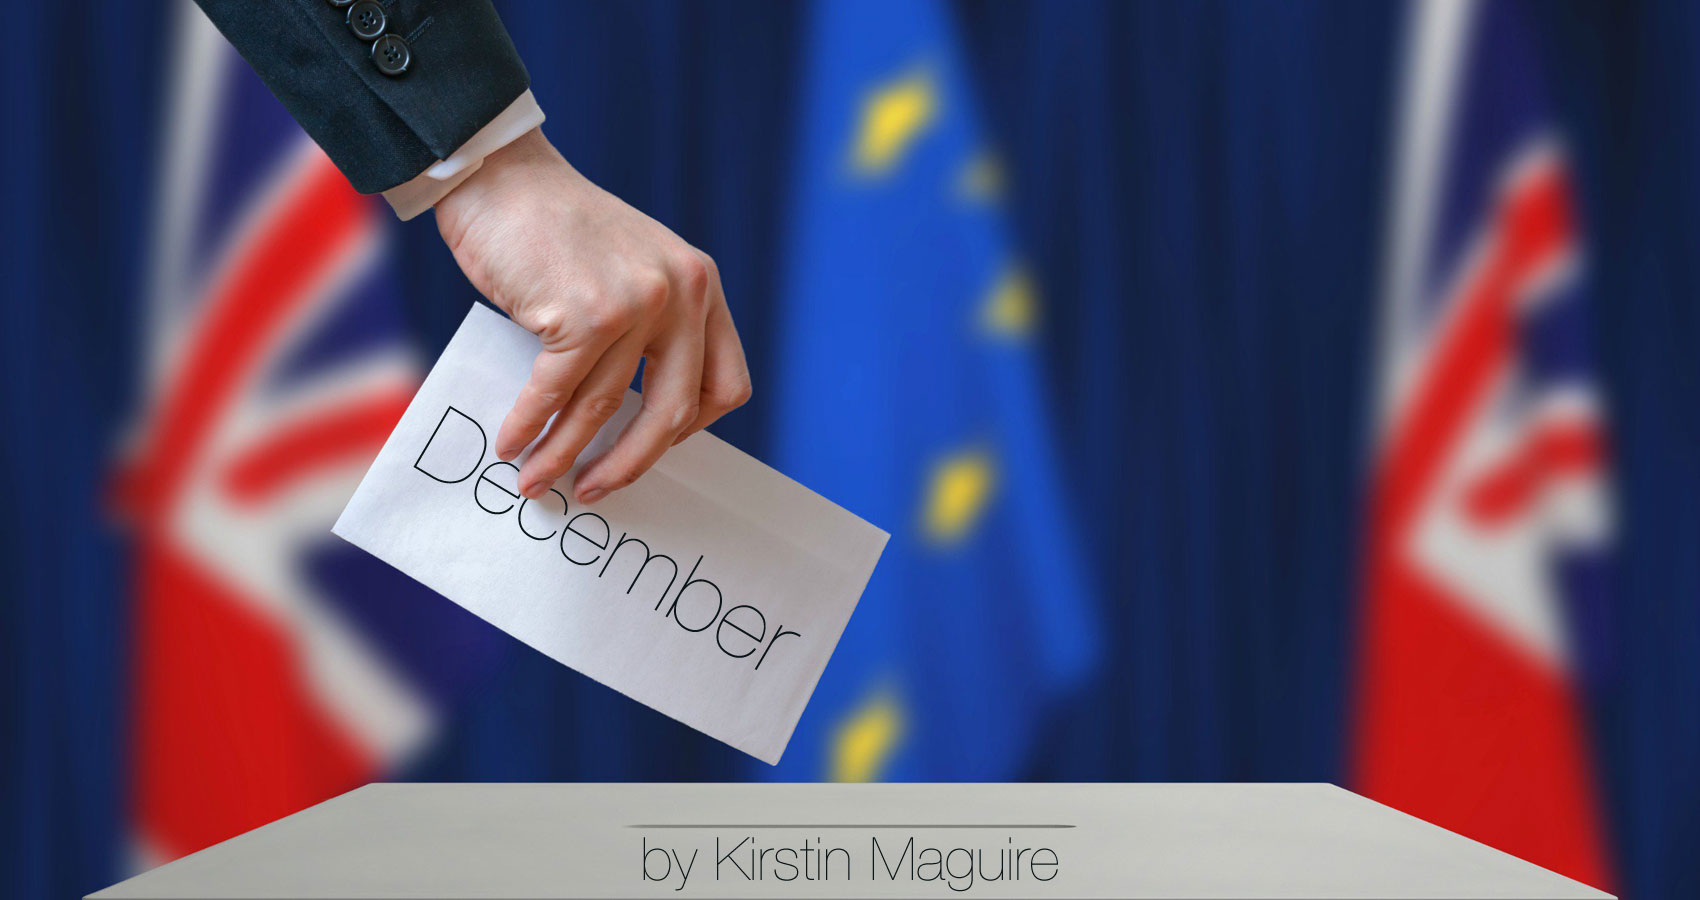 December written by Kirstin Maguire at Spillwords.com